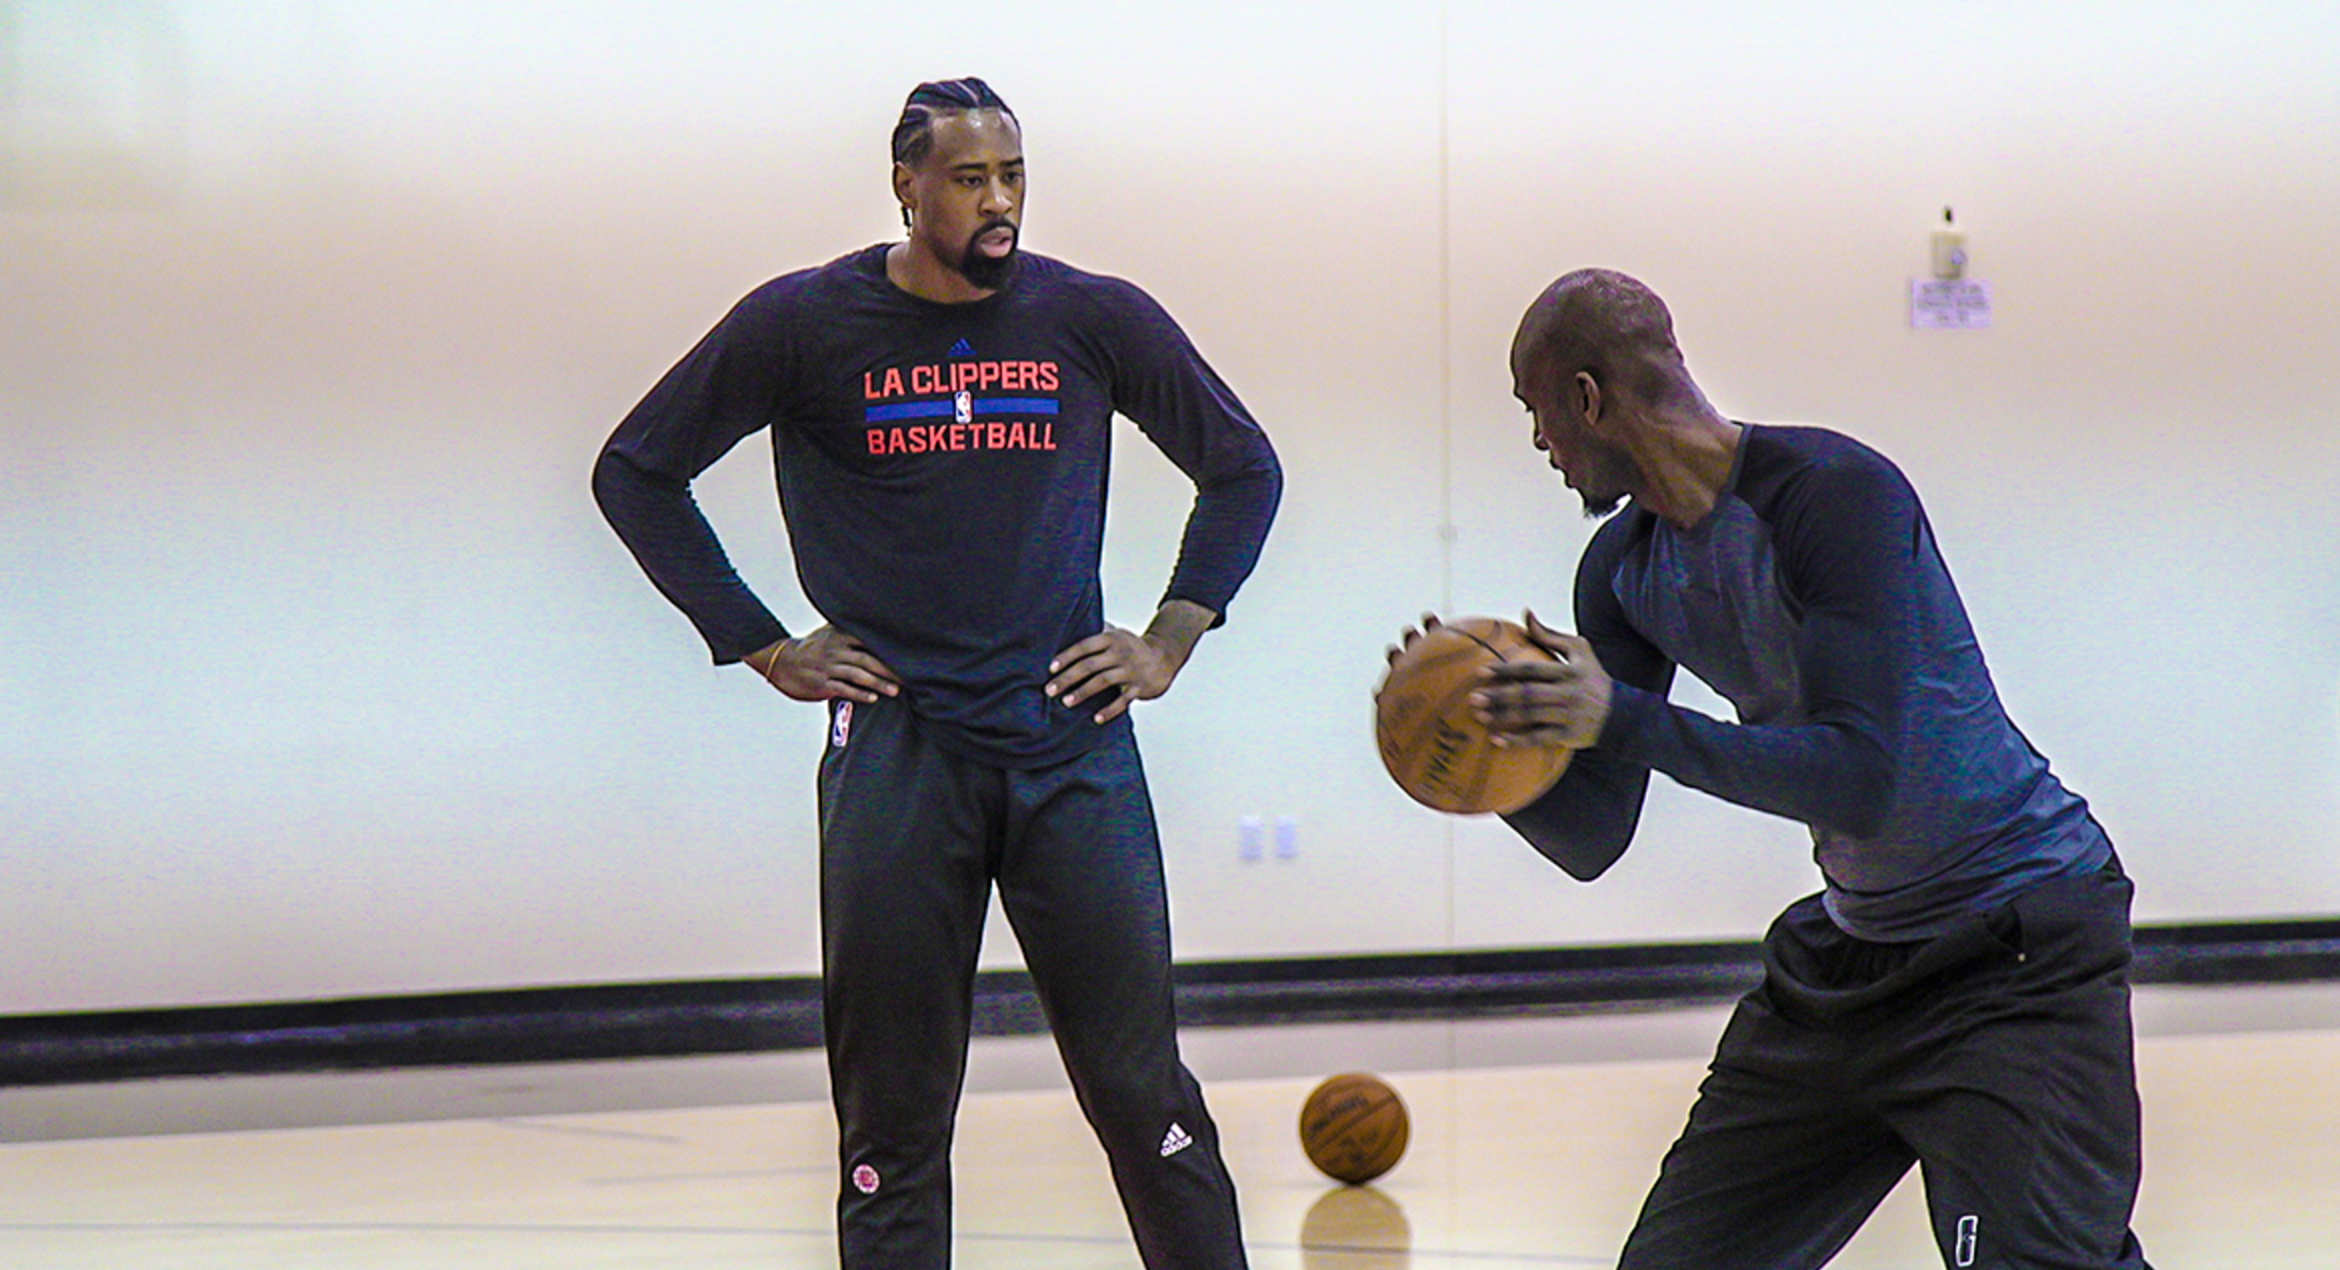 Kevin Garnett Back At Clippers Practice As Consultant